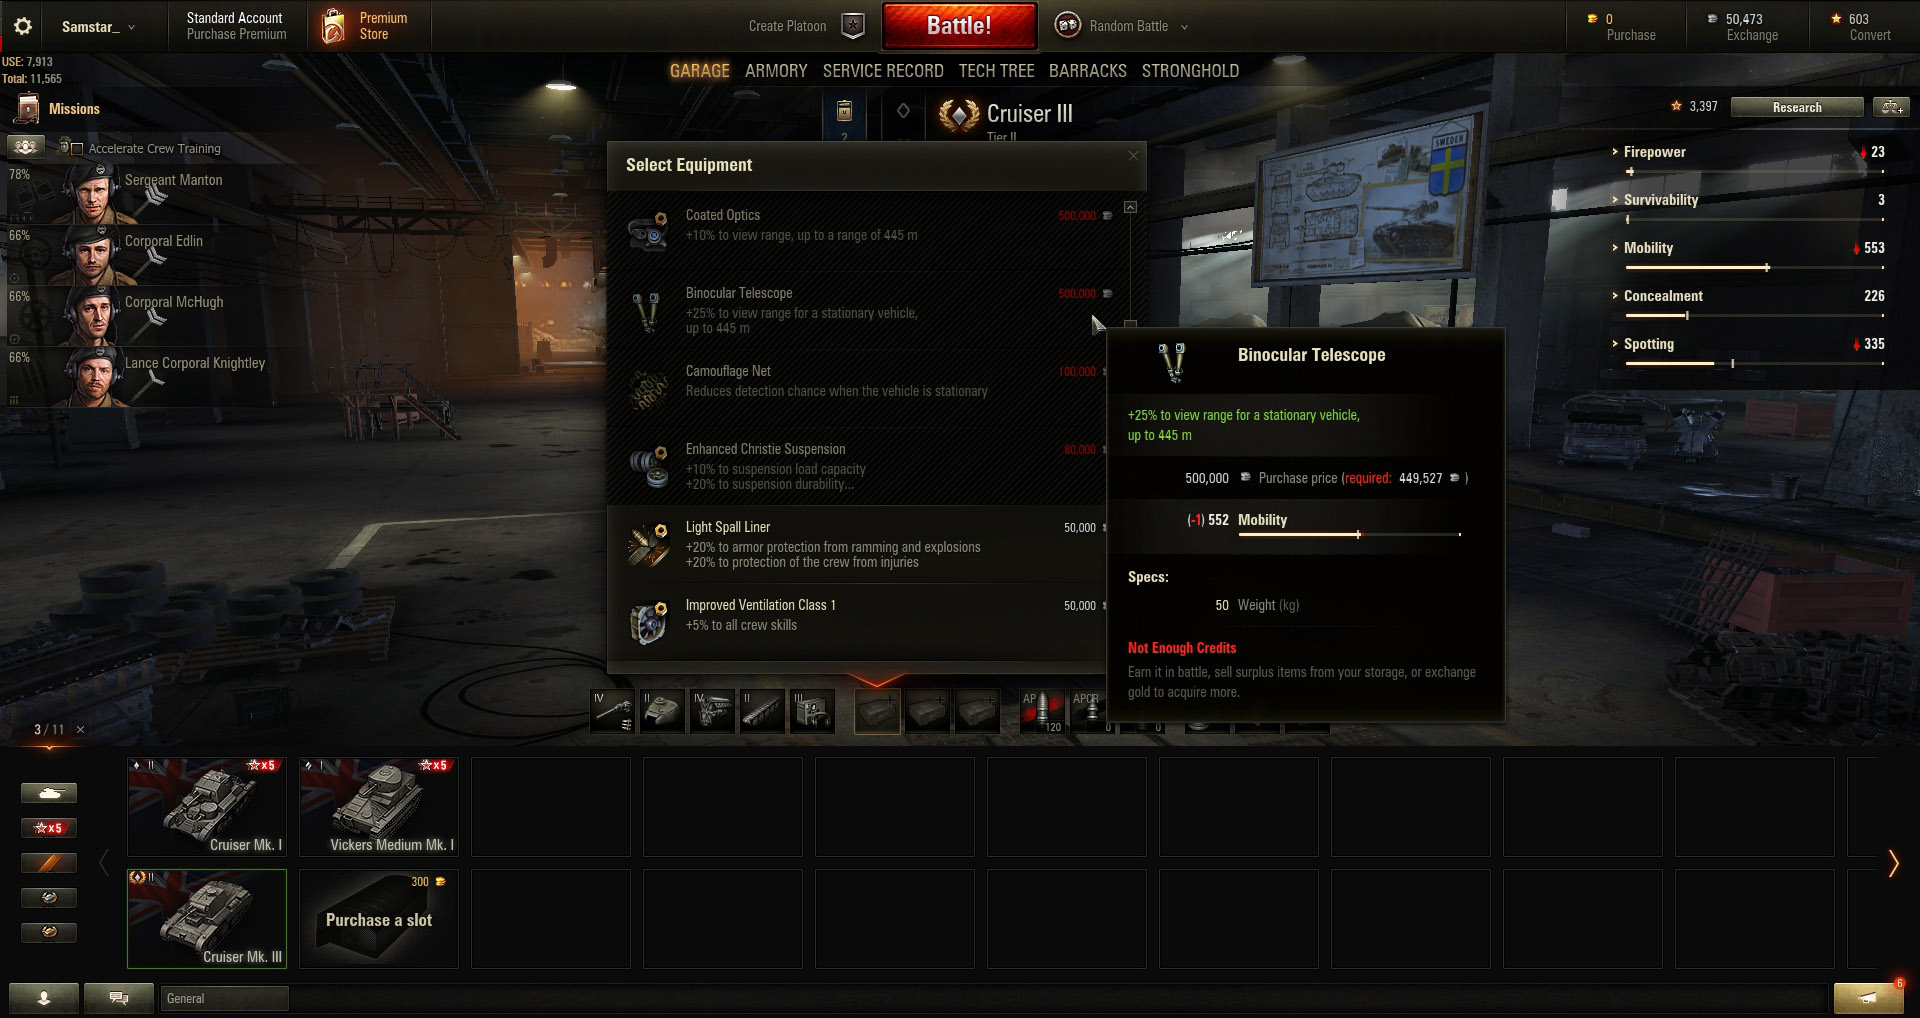 It might be expensive, but Equipment will help you improve your Light Tank